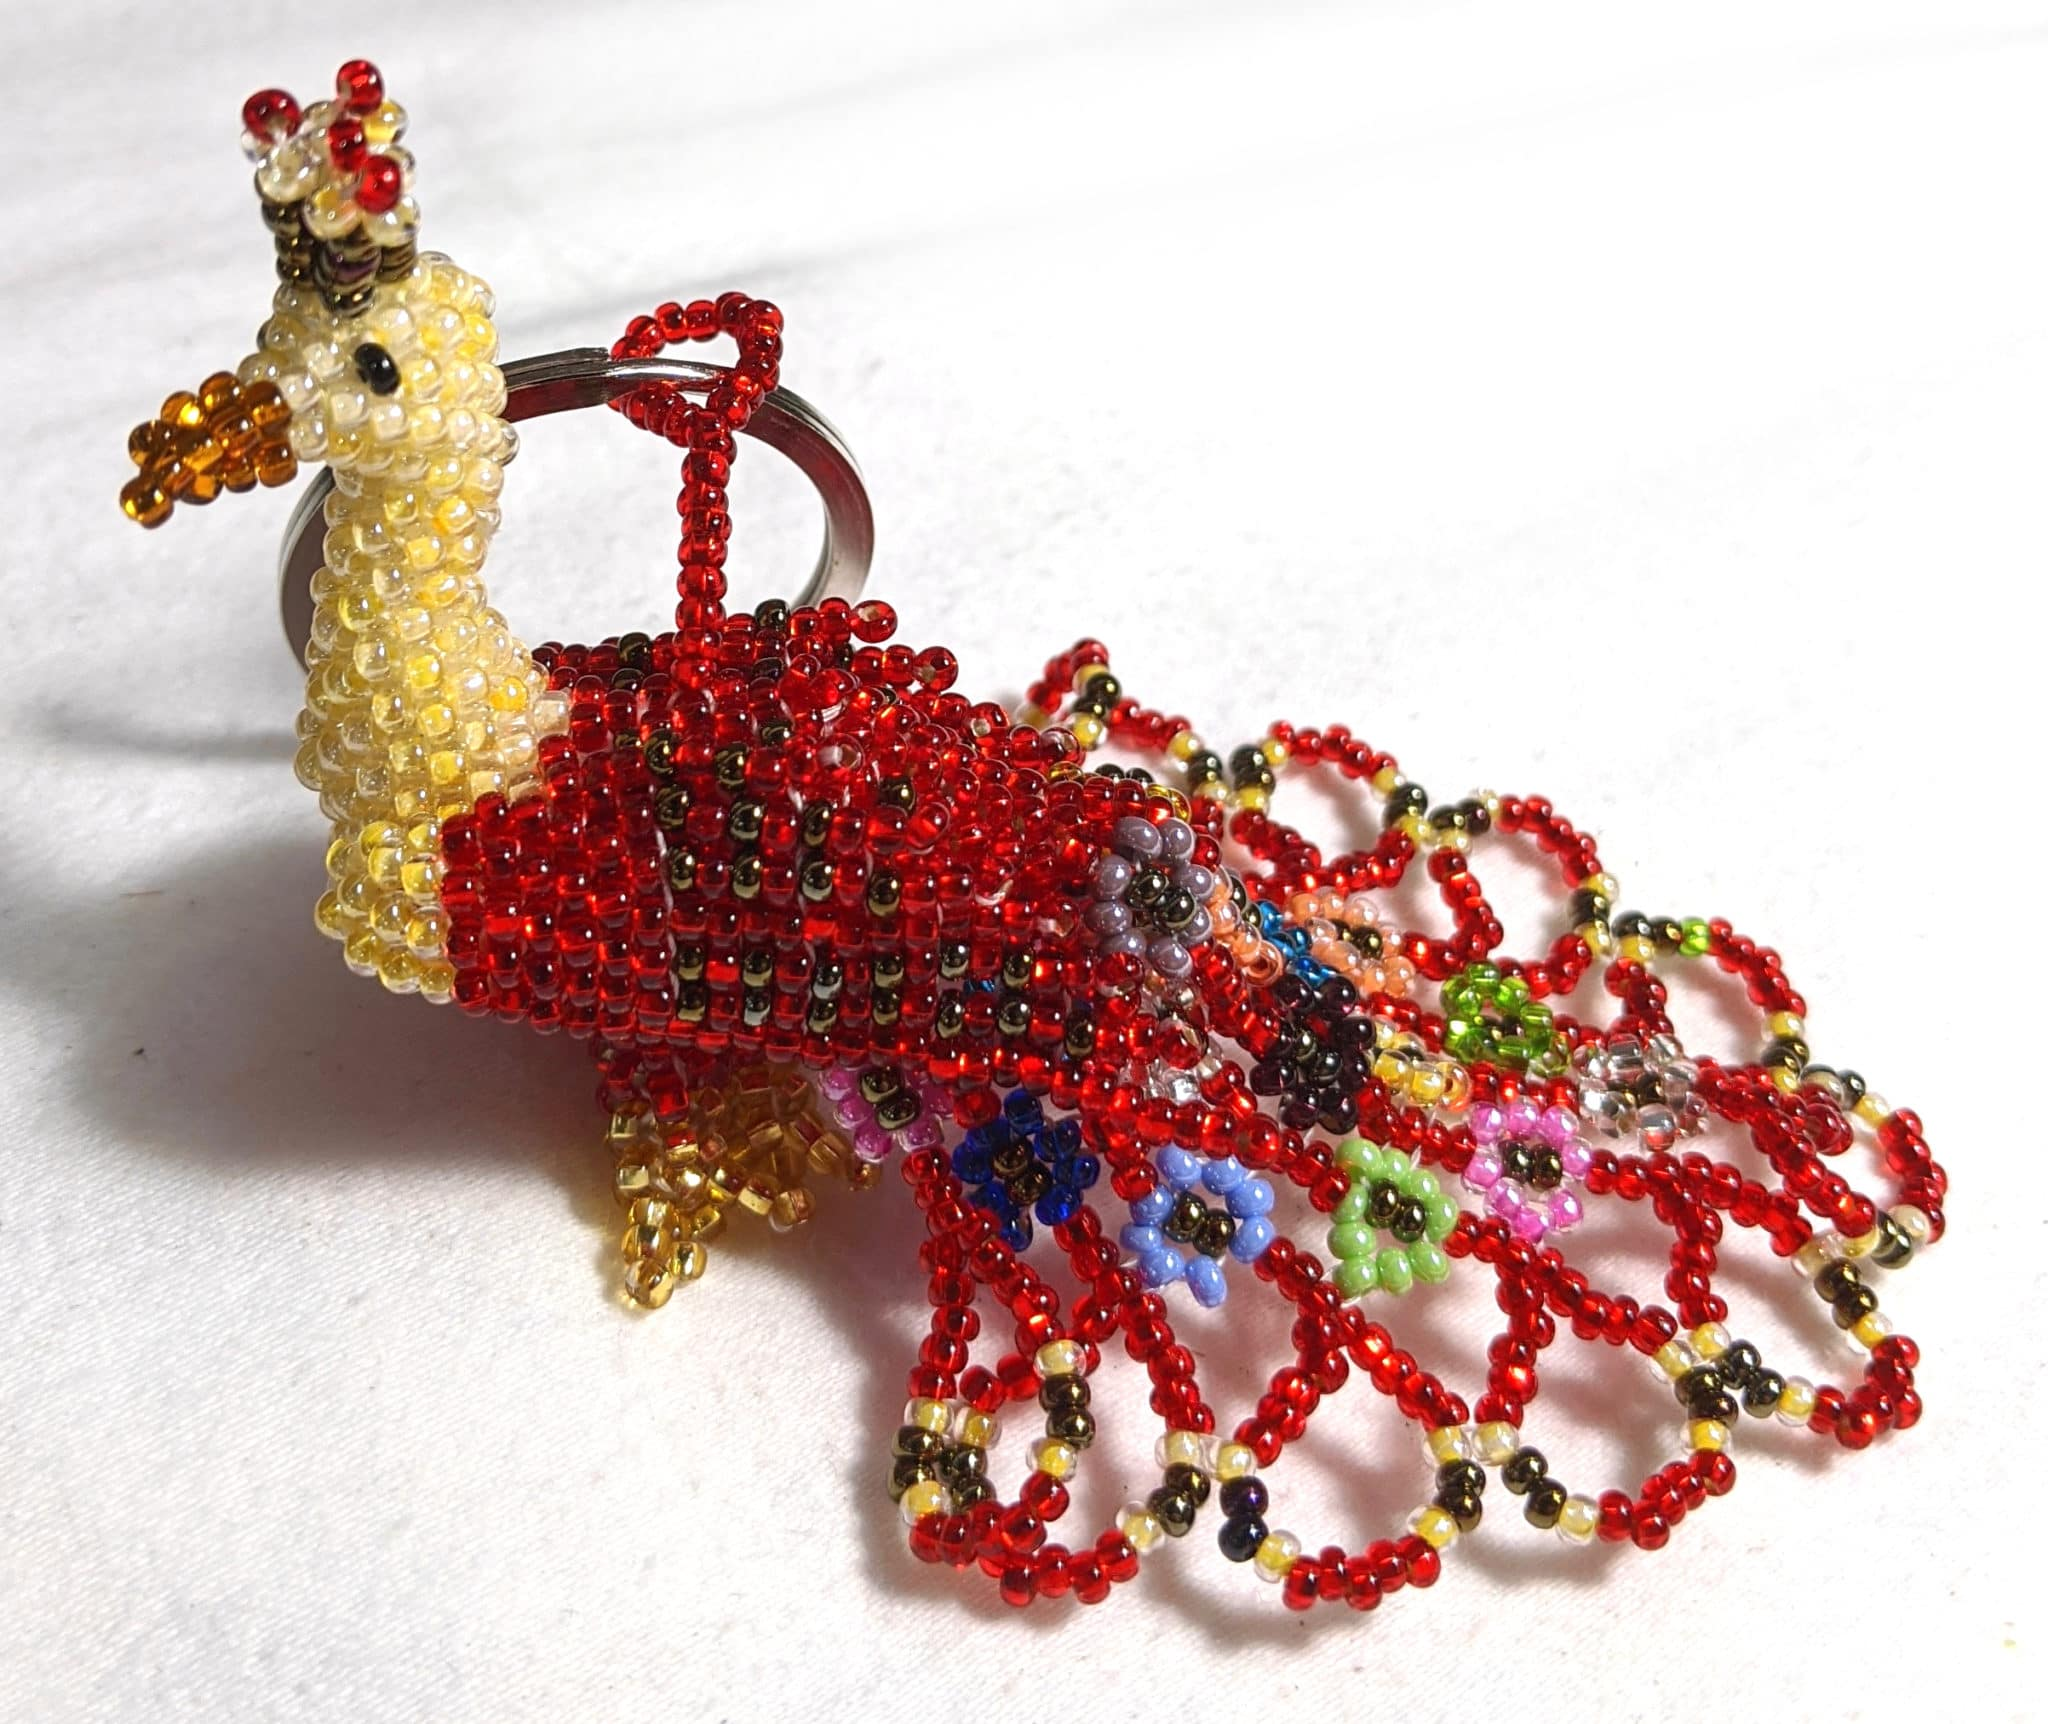 Peacock Beaded Ornament - Red